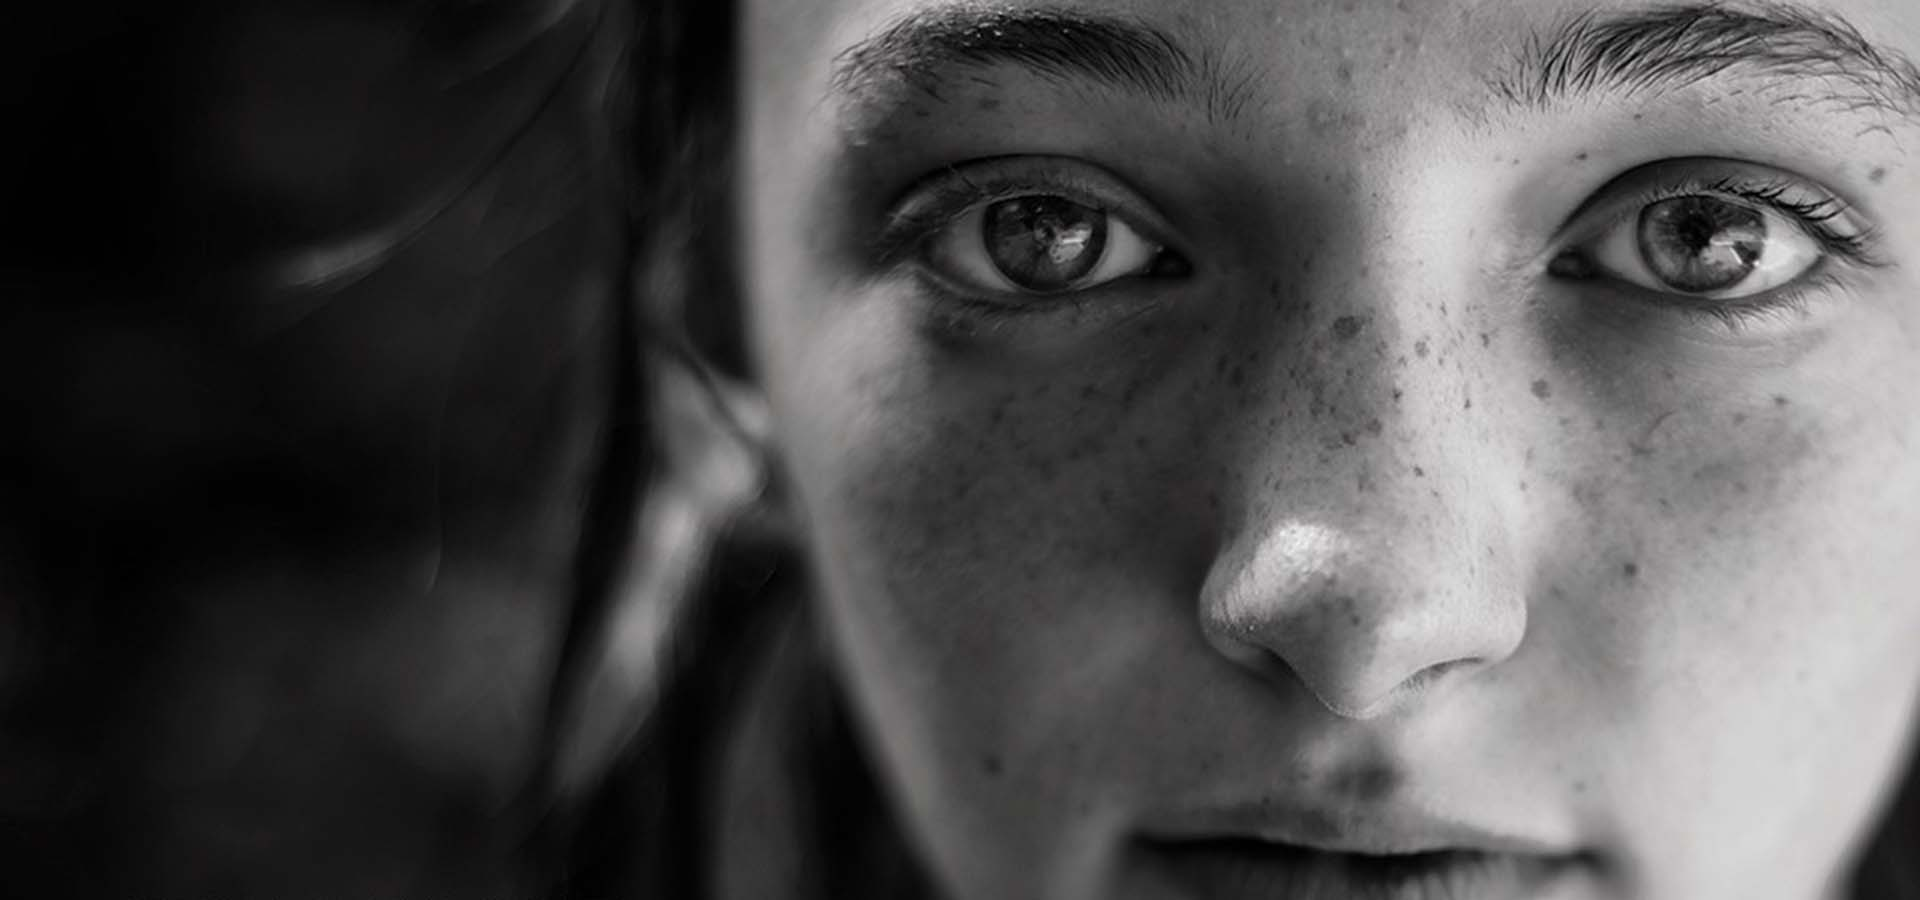 Black & white photo of a girl students face